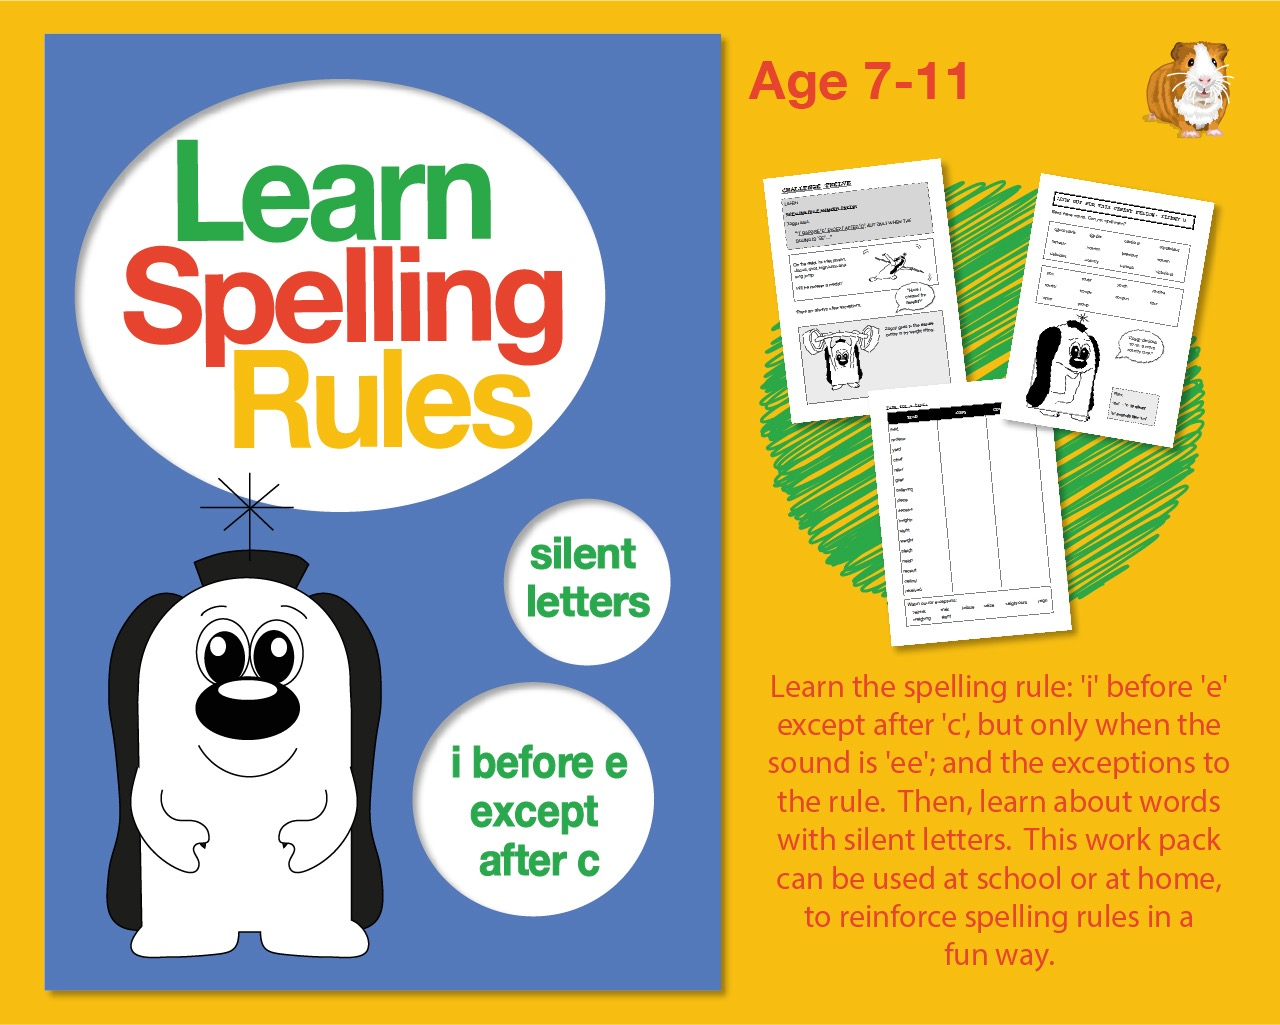 Learn Spelling Rules: 'i' Before 'e' Except After 'c' (7-11 years)